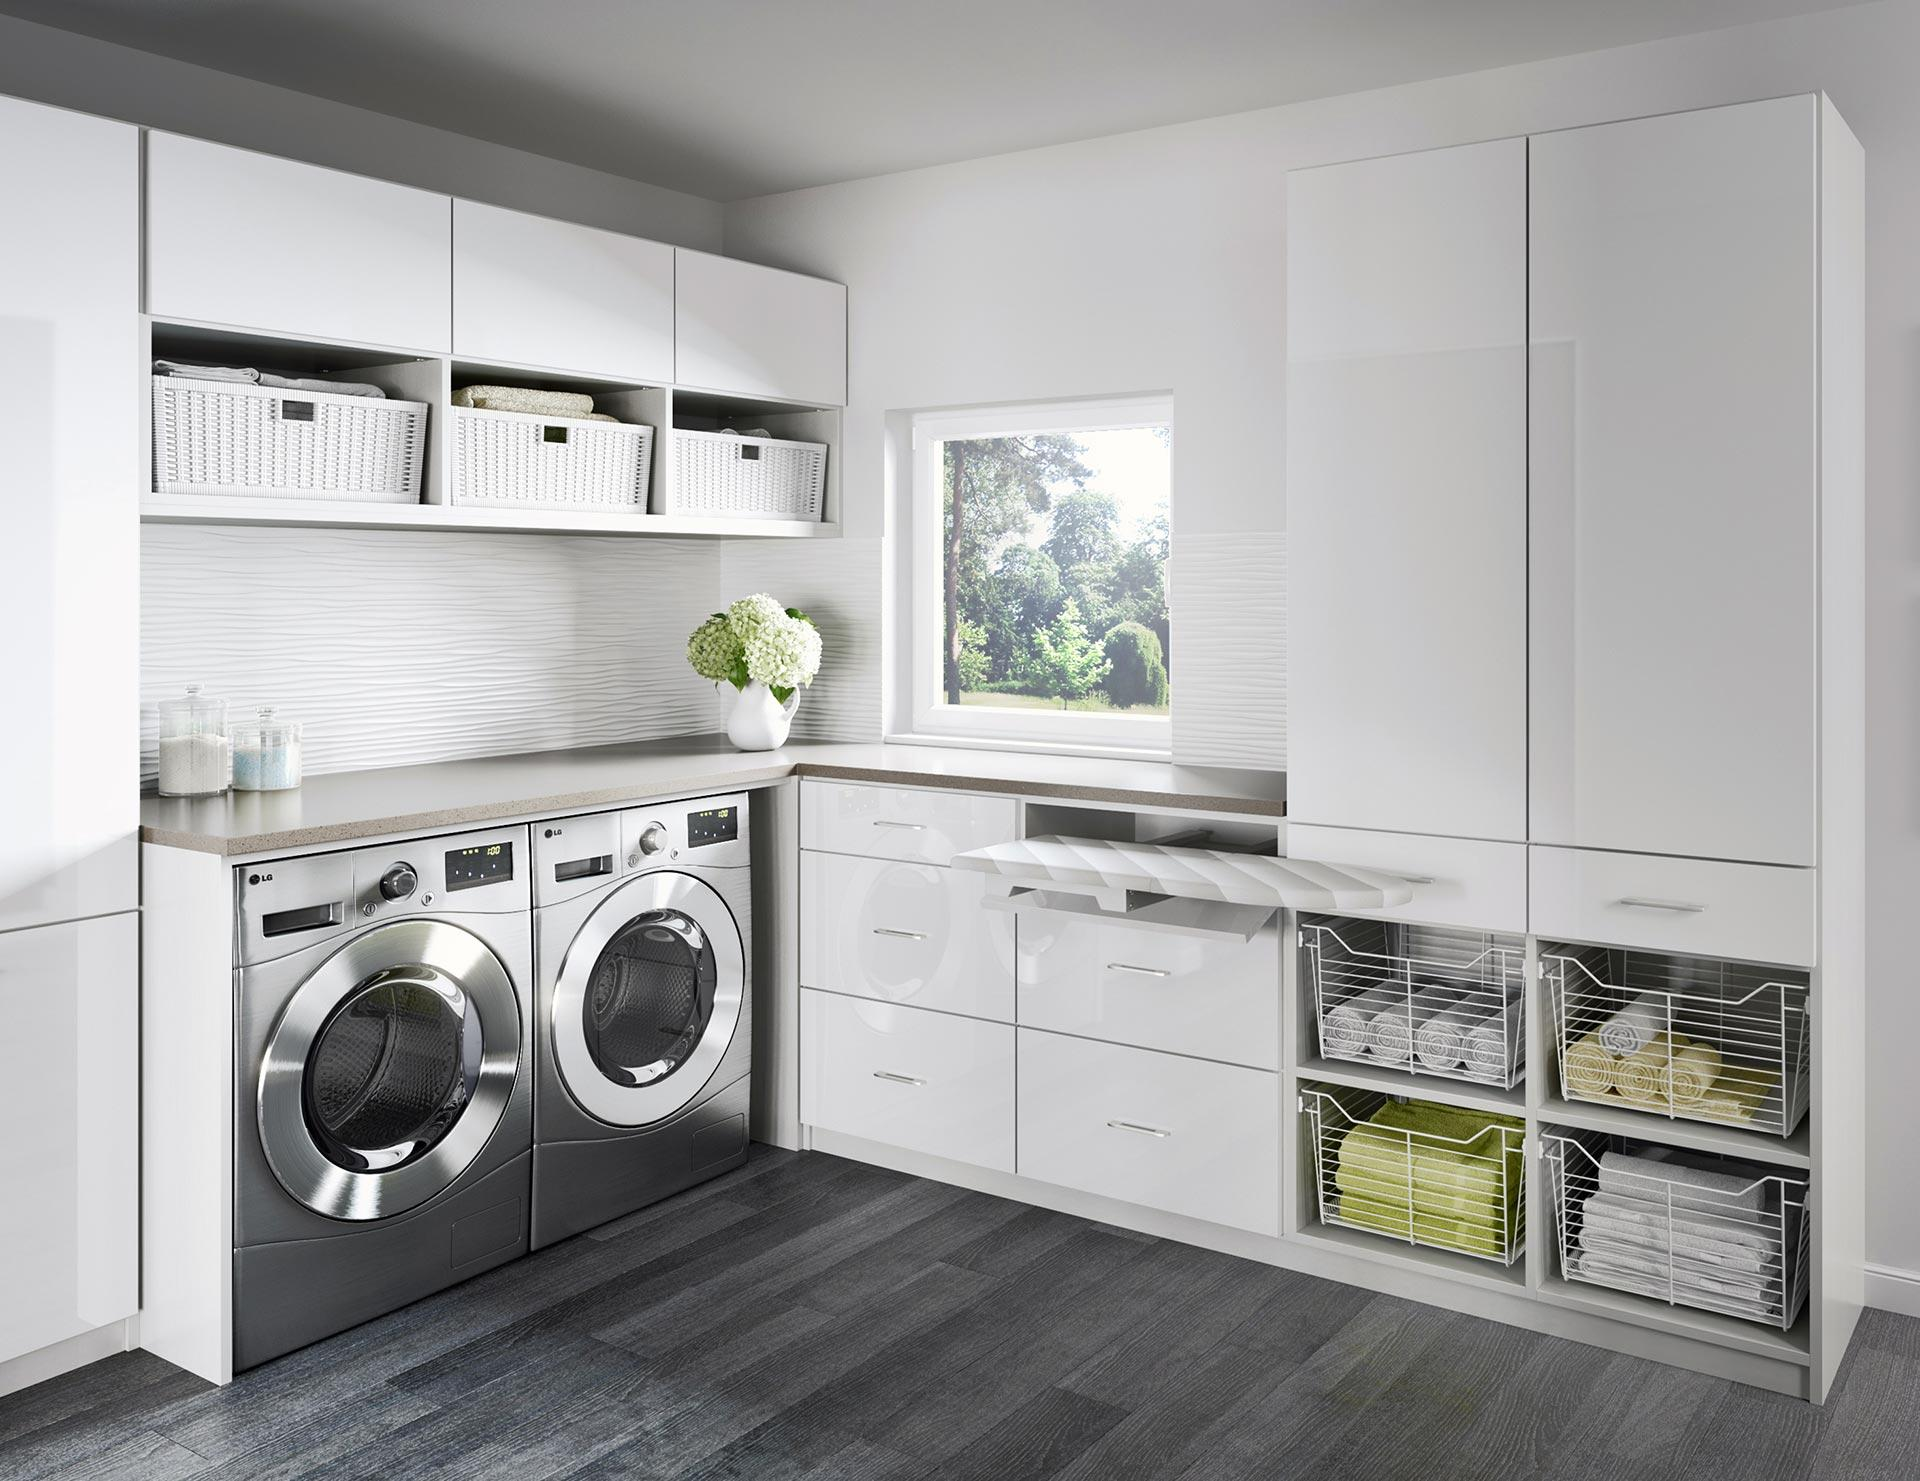 Merveilleux Newport Laundry Room With White Cabinets